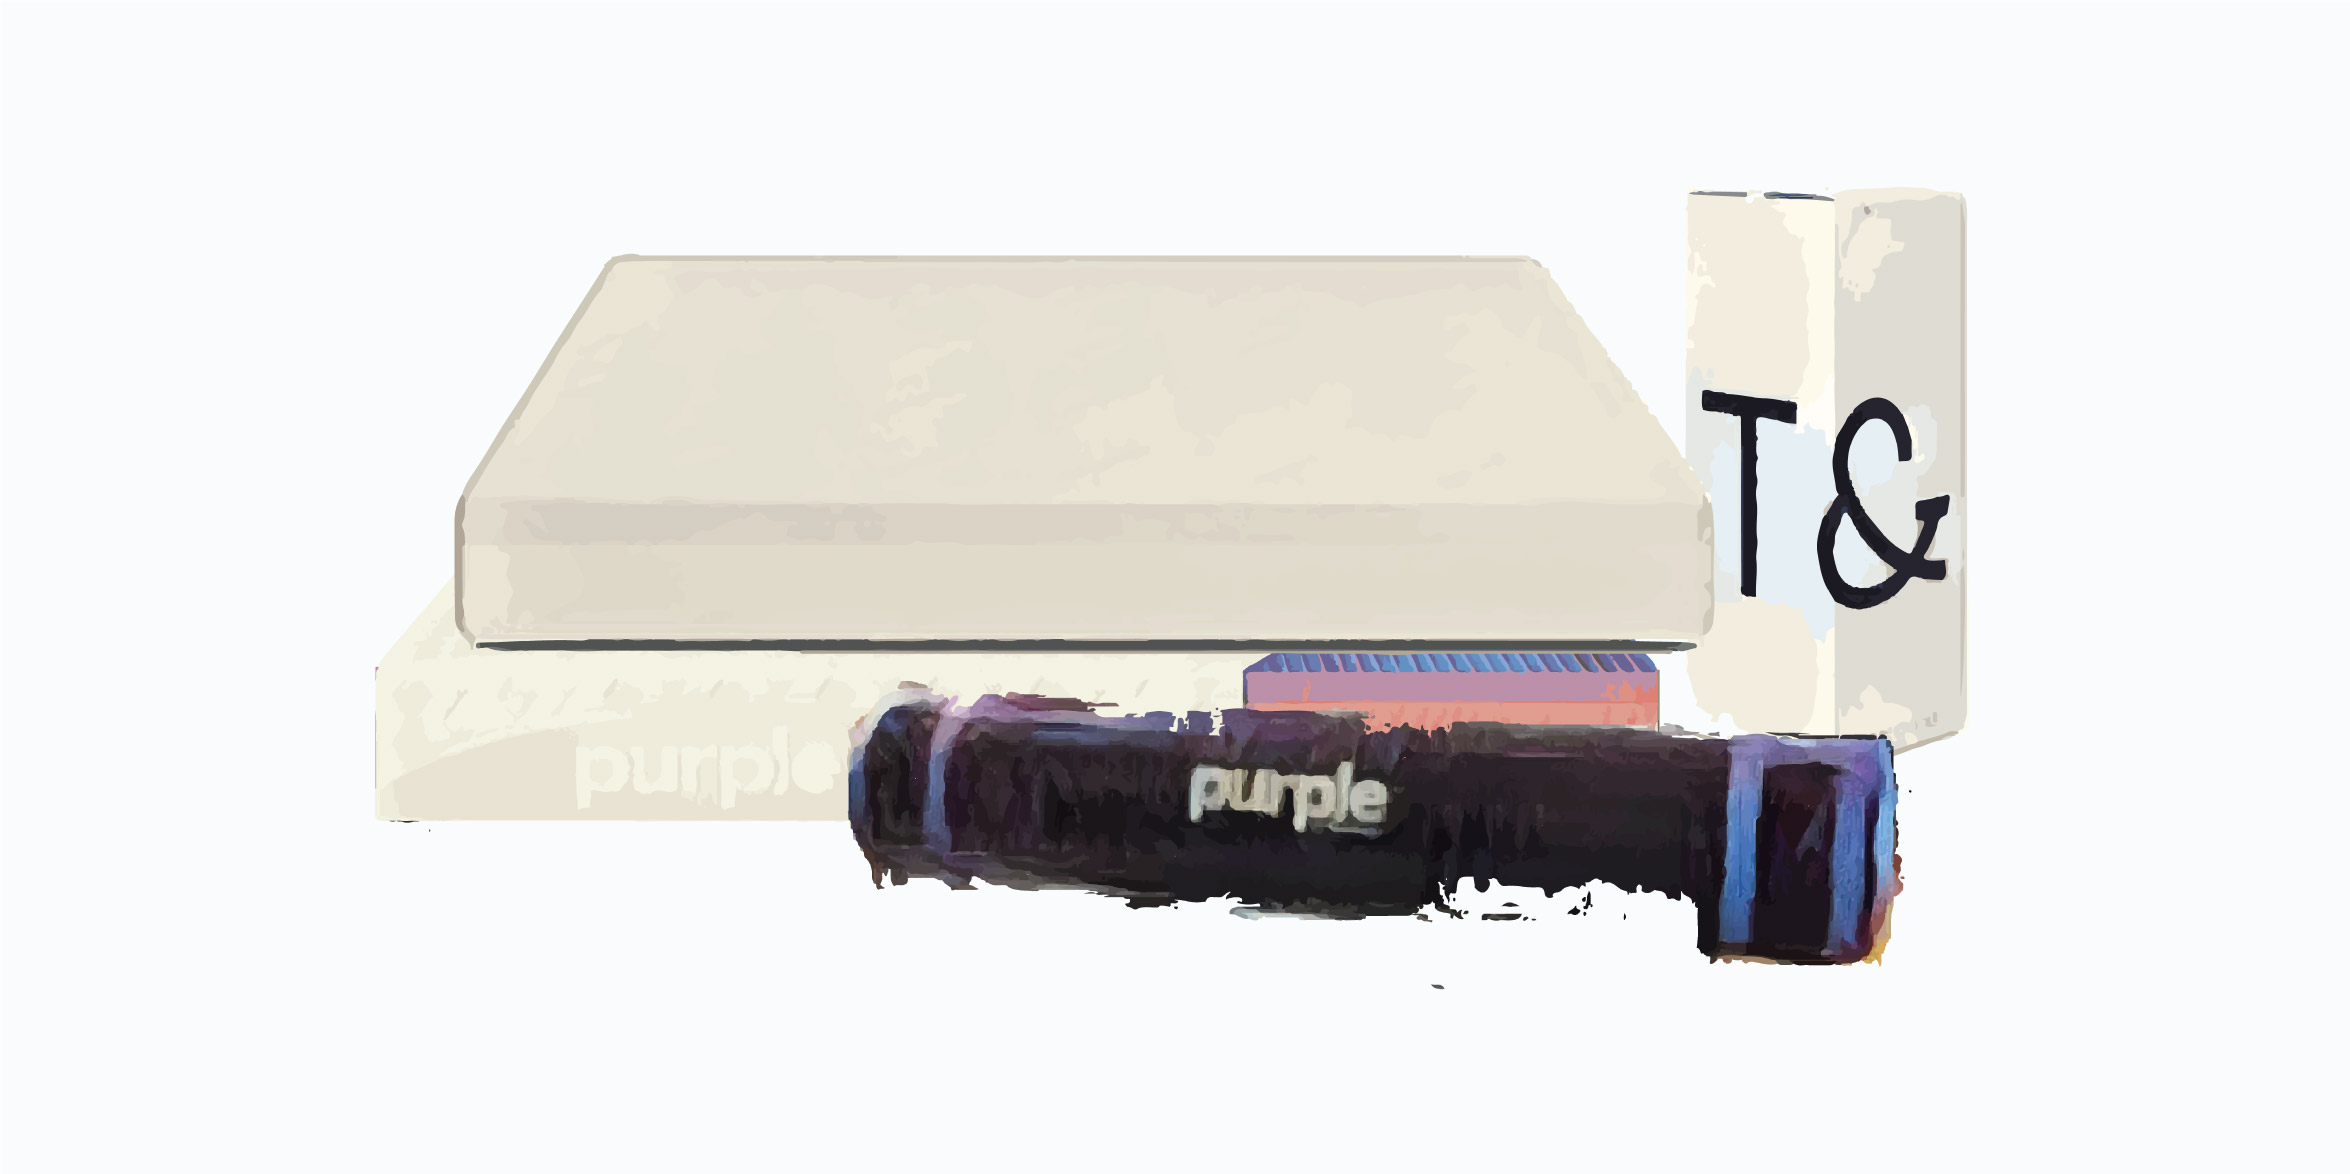 Tuft Needle Vs Purple Mattress 2018 Review By Bedowl